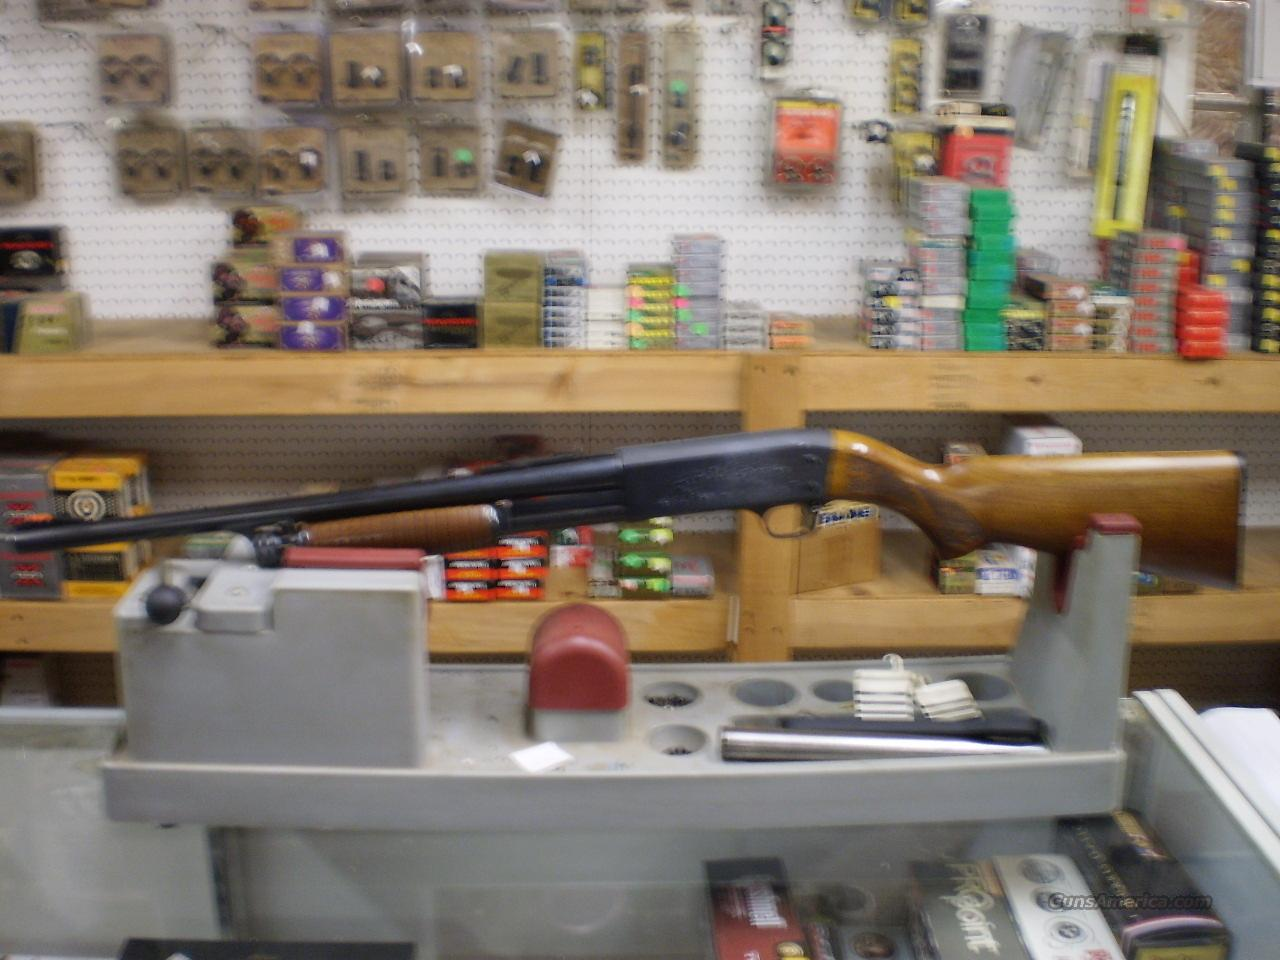 ITHACA DEERSLAYER 12 GAUGE  Guns > Shotguns > Ithaca Shotguns > Pump